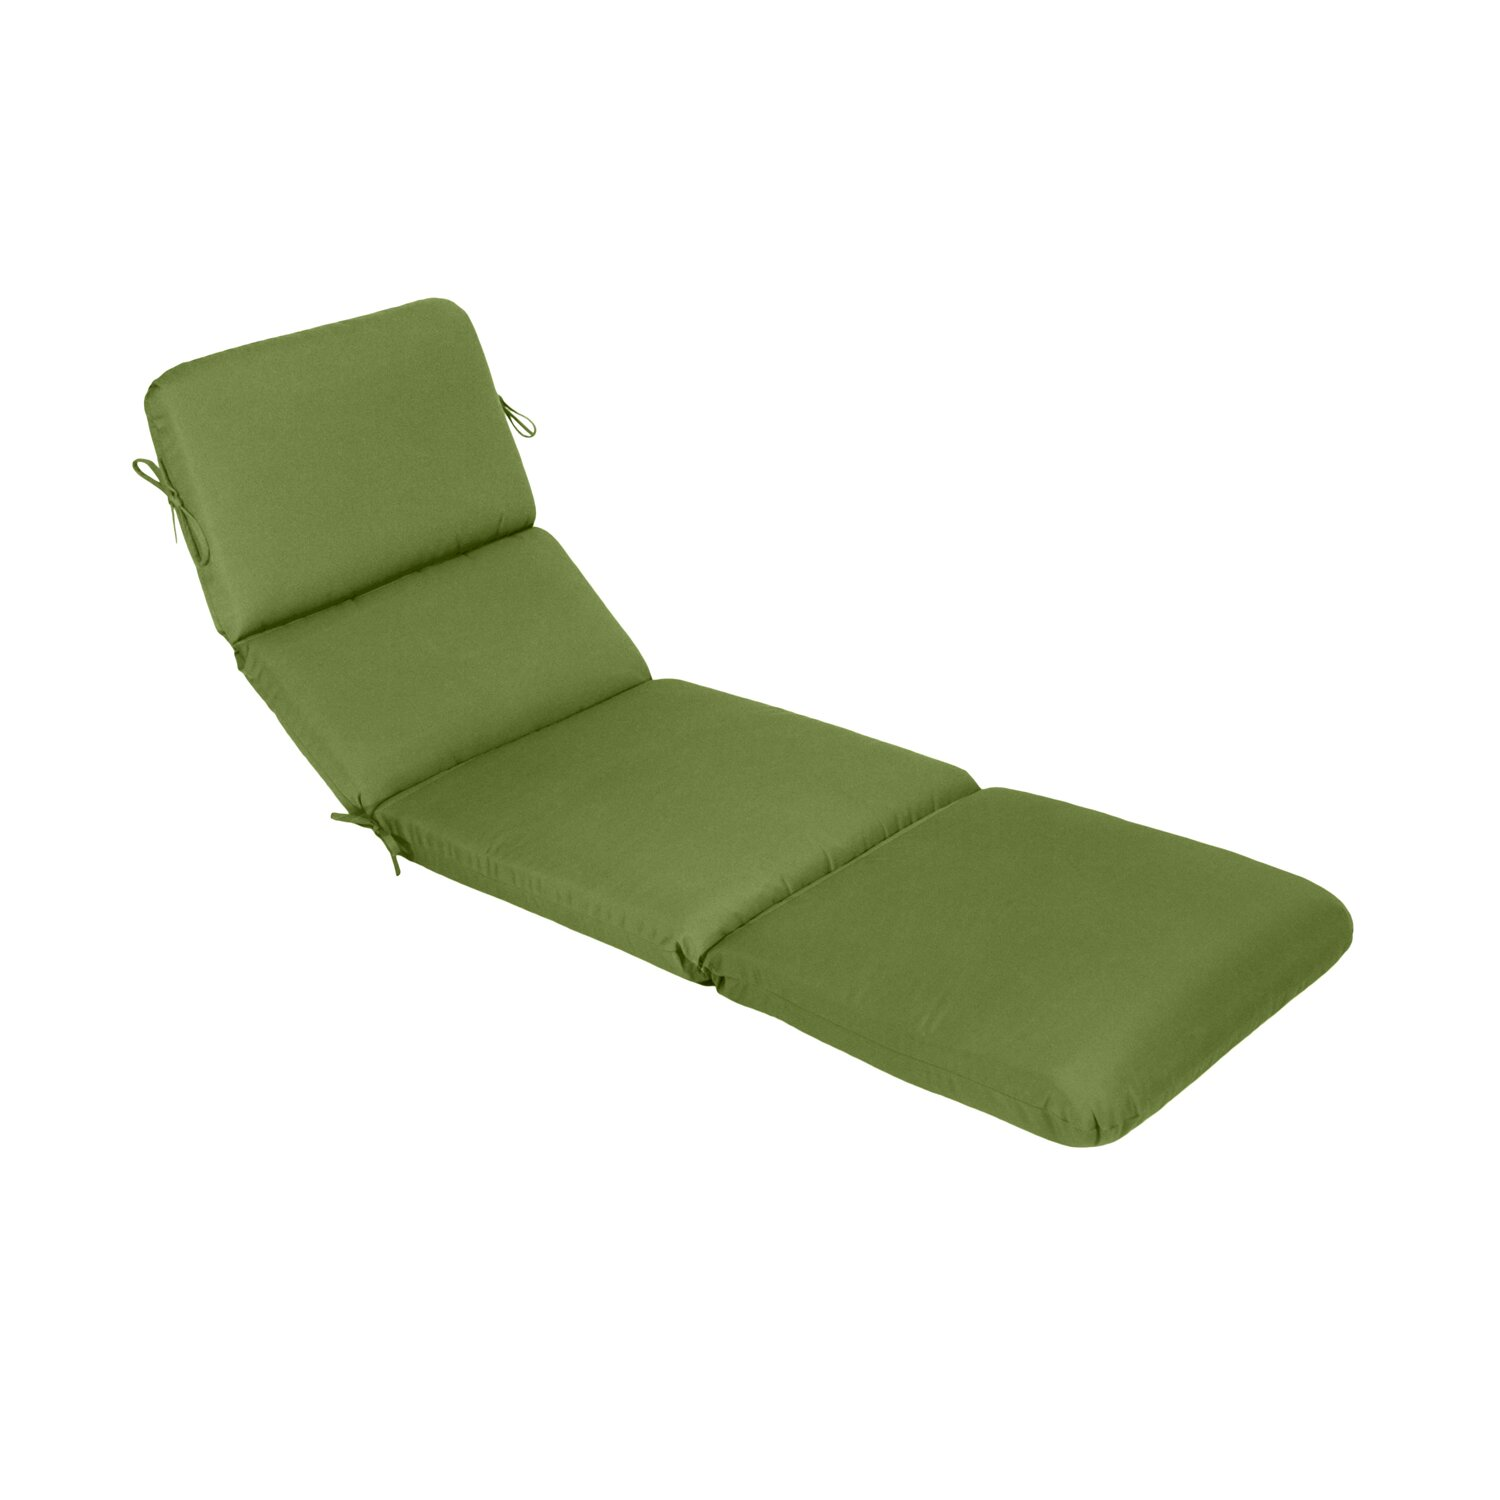 Wildon home saratoga outdoor sunbrella chaise lounge for Chaise cushion sale